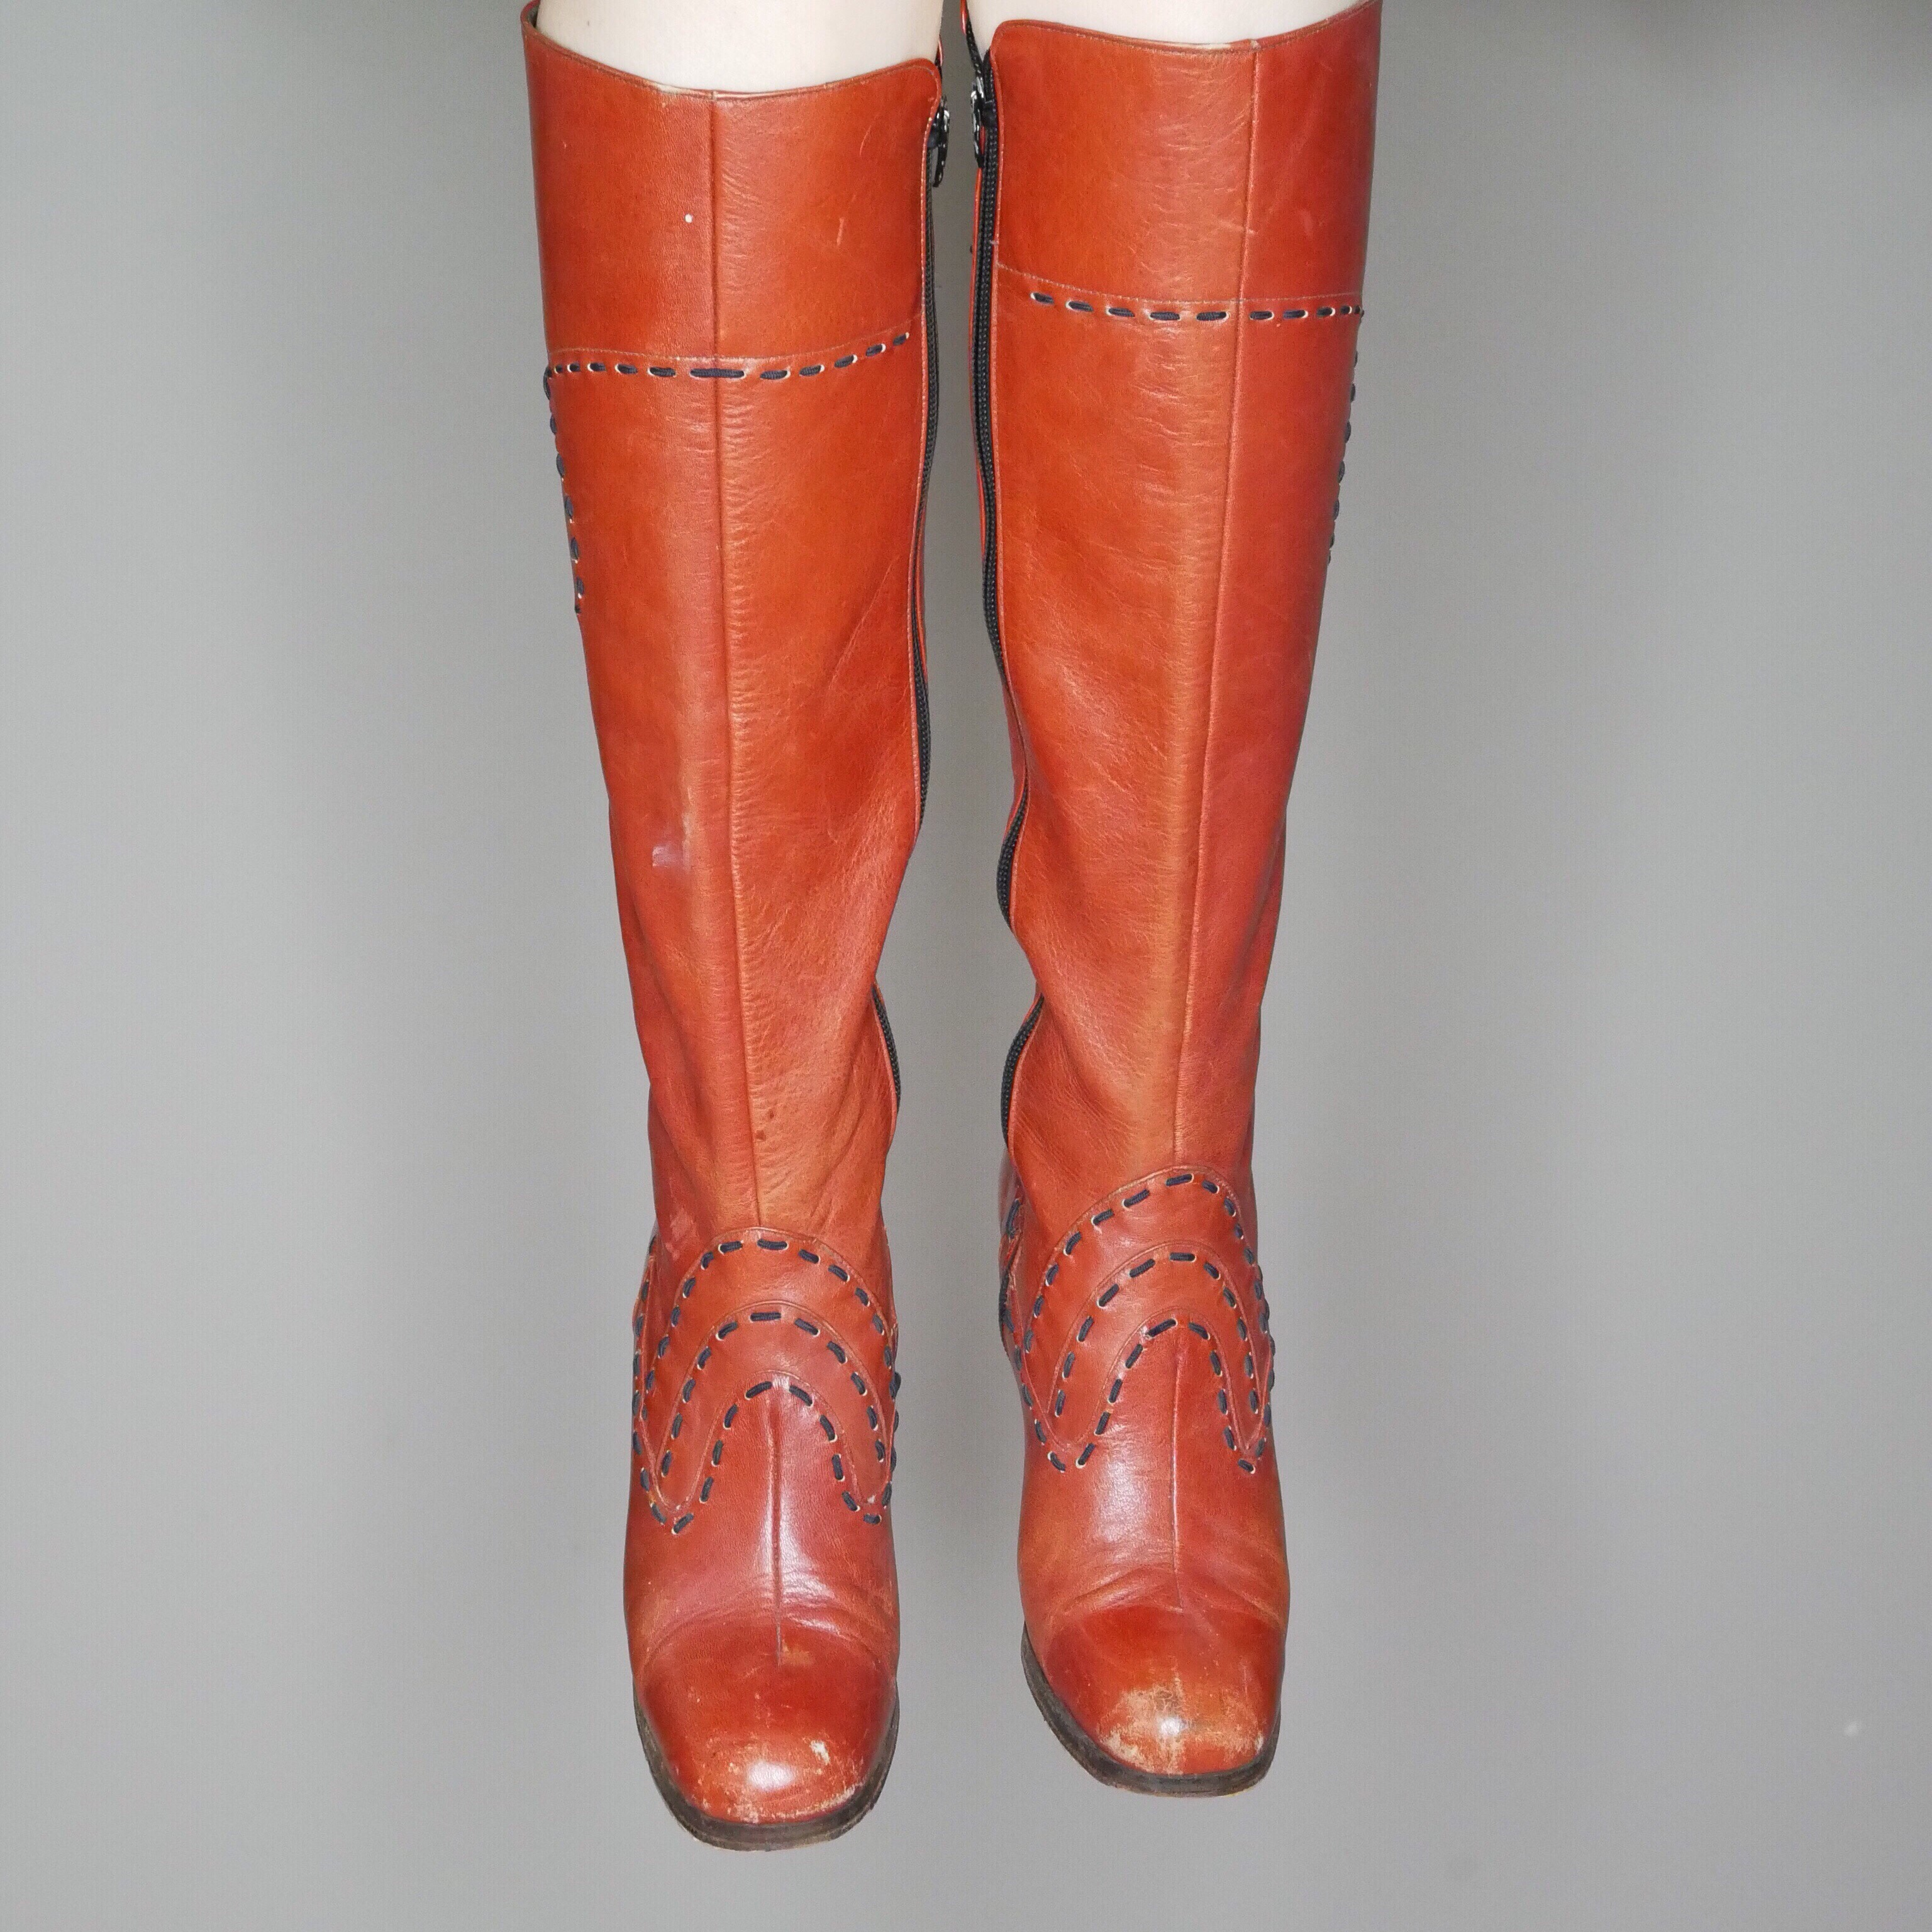 Qt mod western style knee high boots from the    - Depop